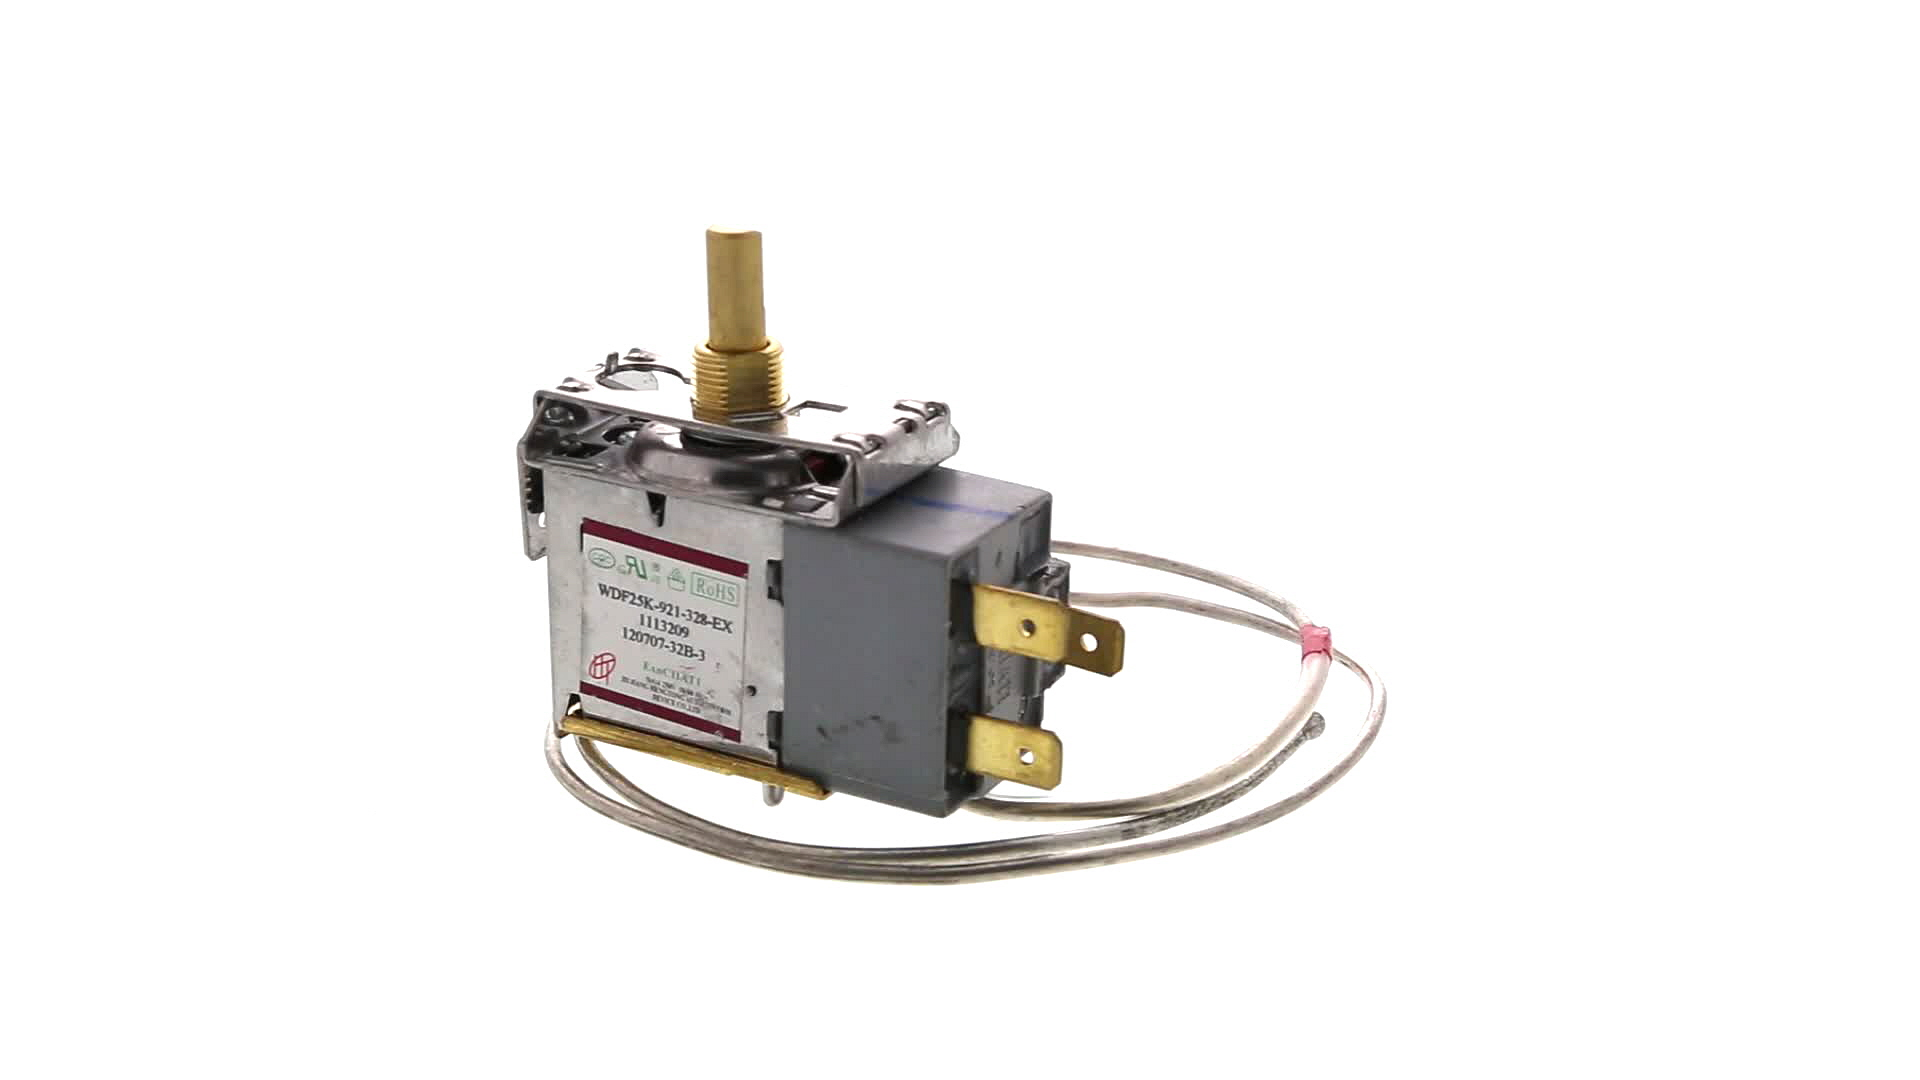 THERMOSTAT FROID WDF22K-924-028E LG BULBE 1050 - 2